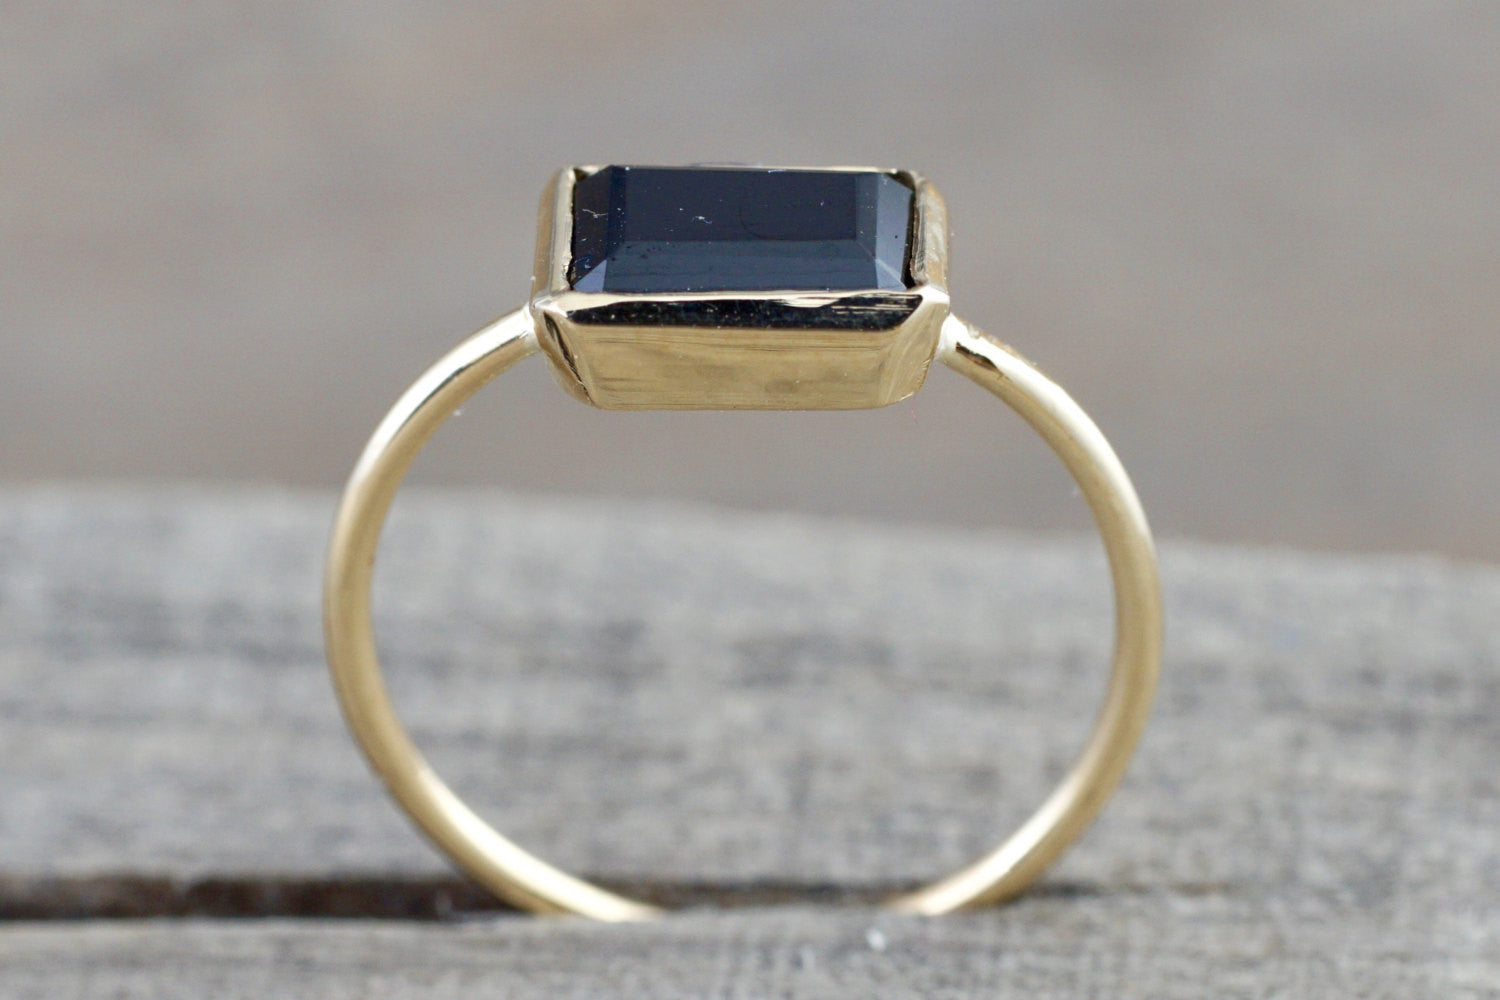 14k Yellow Gold Black Spinel 1.24 carats Rectangle Square Bezel Band Ring Stackable